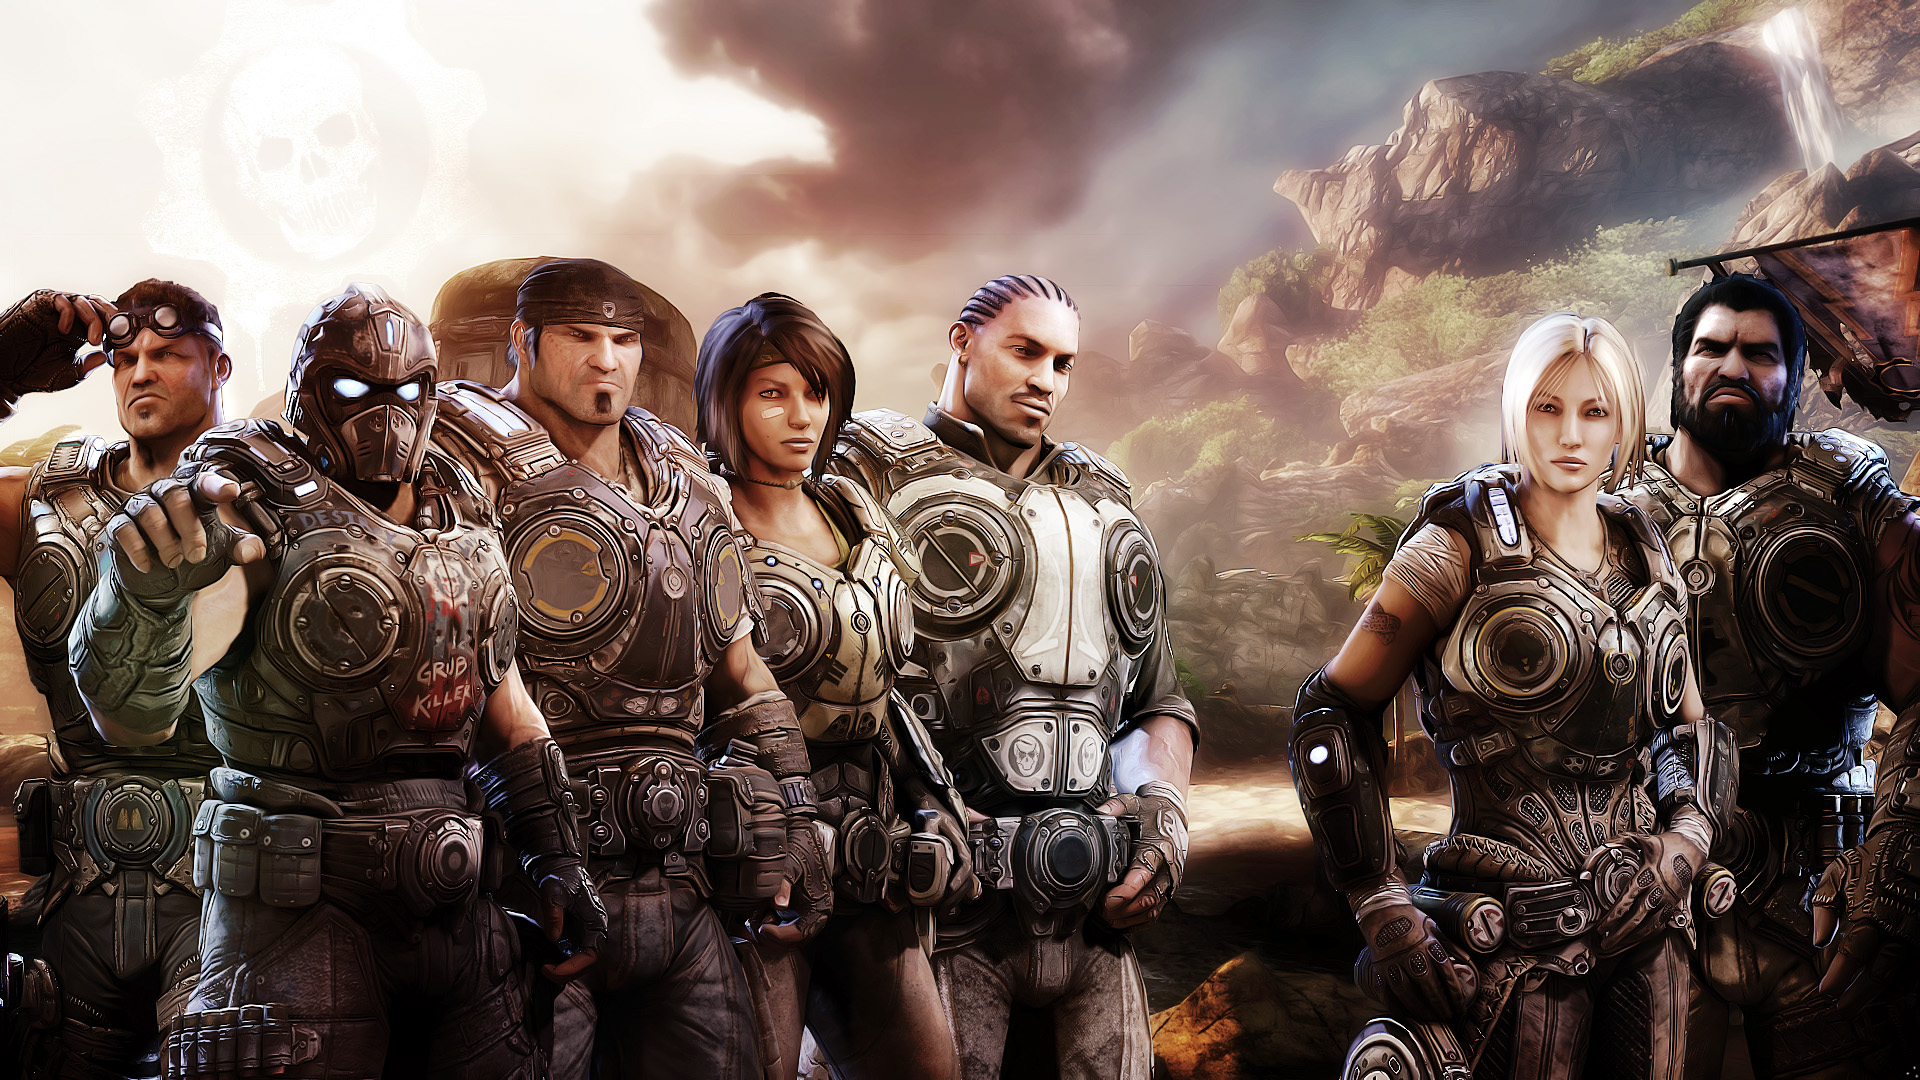 Free Download Gears Of War 3 Xbox Game Wallpapers Hd Wallpapers